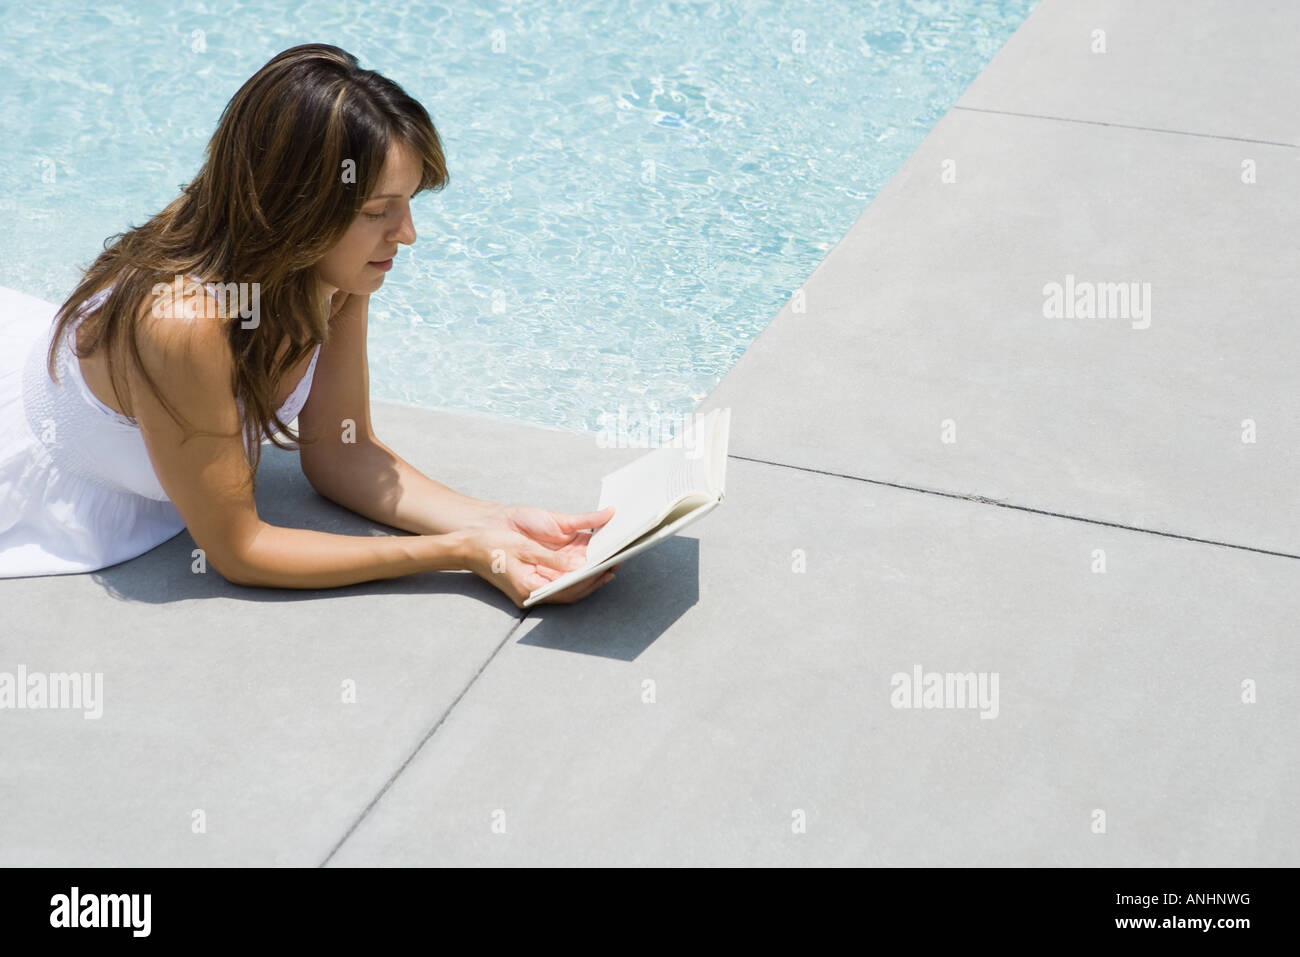 Woman lying on stomach next to pool, reading book - Stock Image